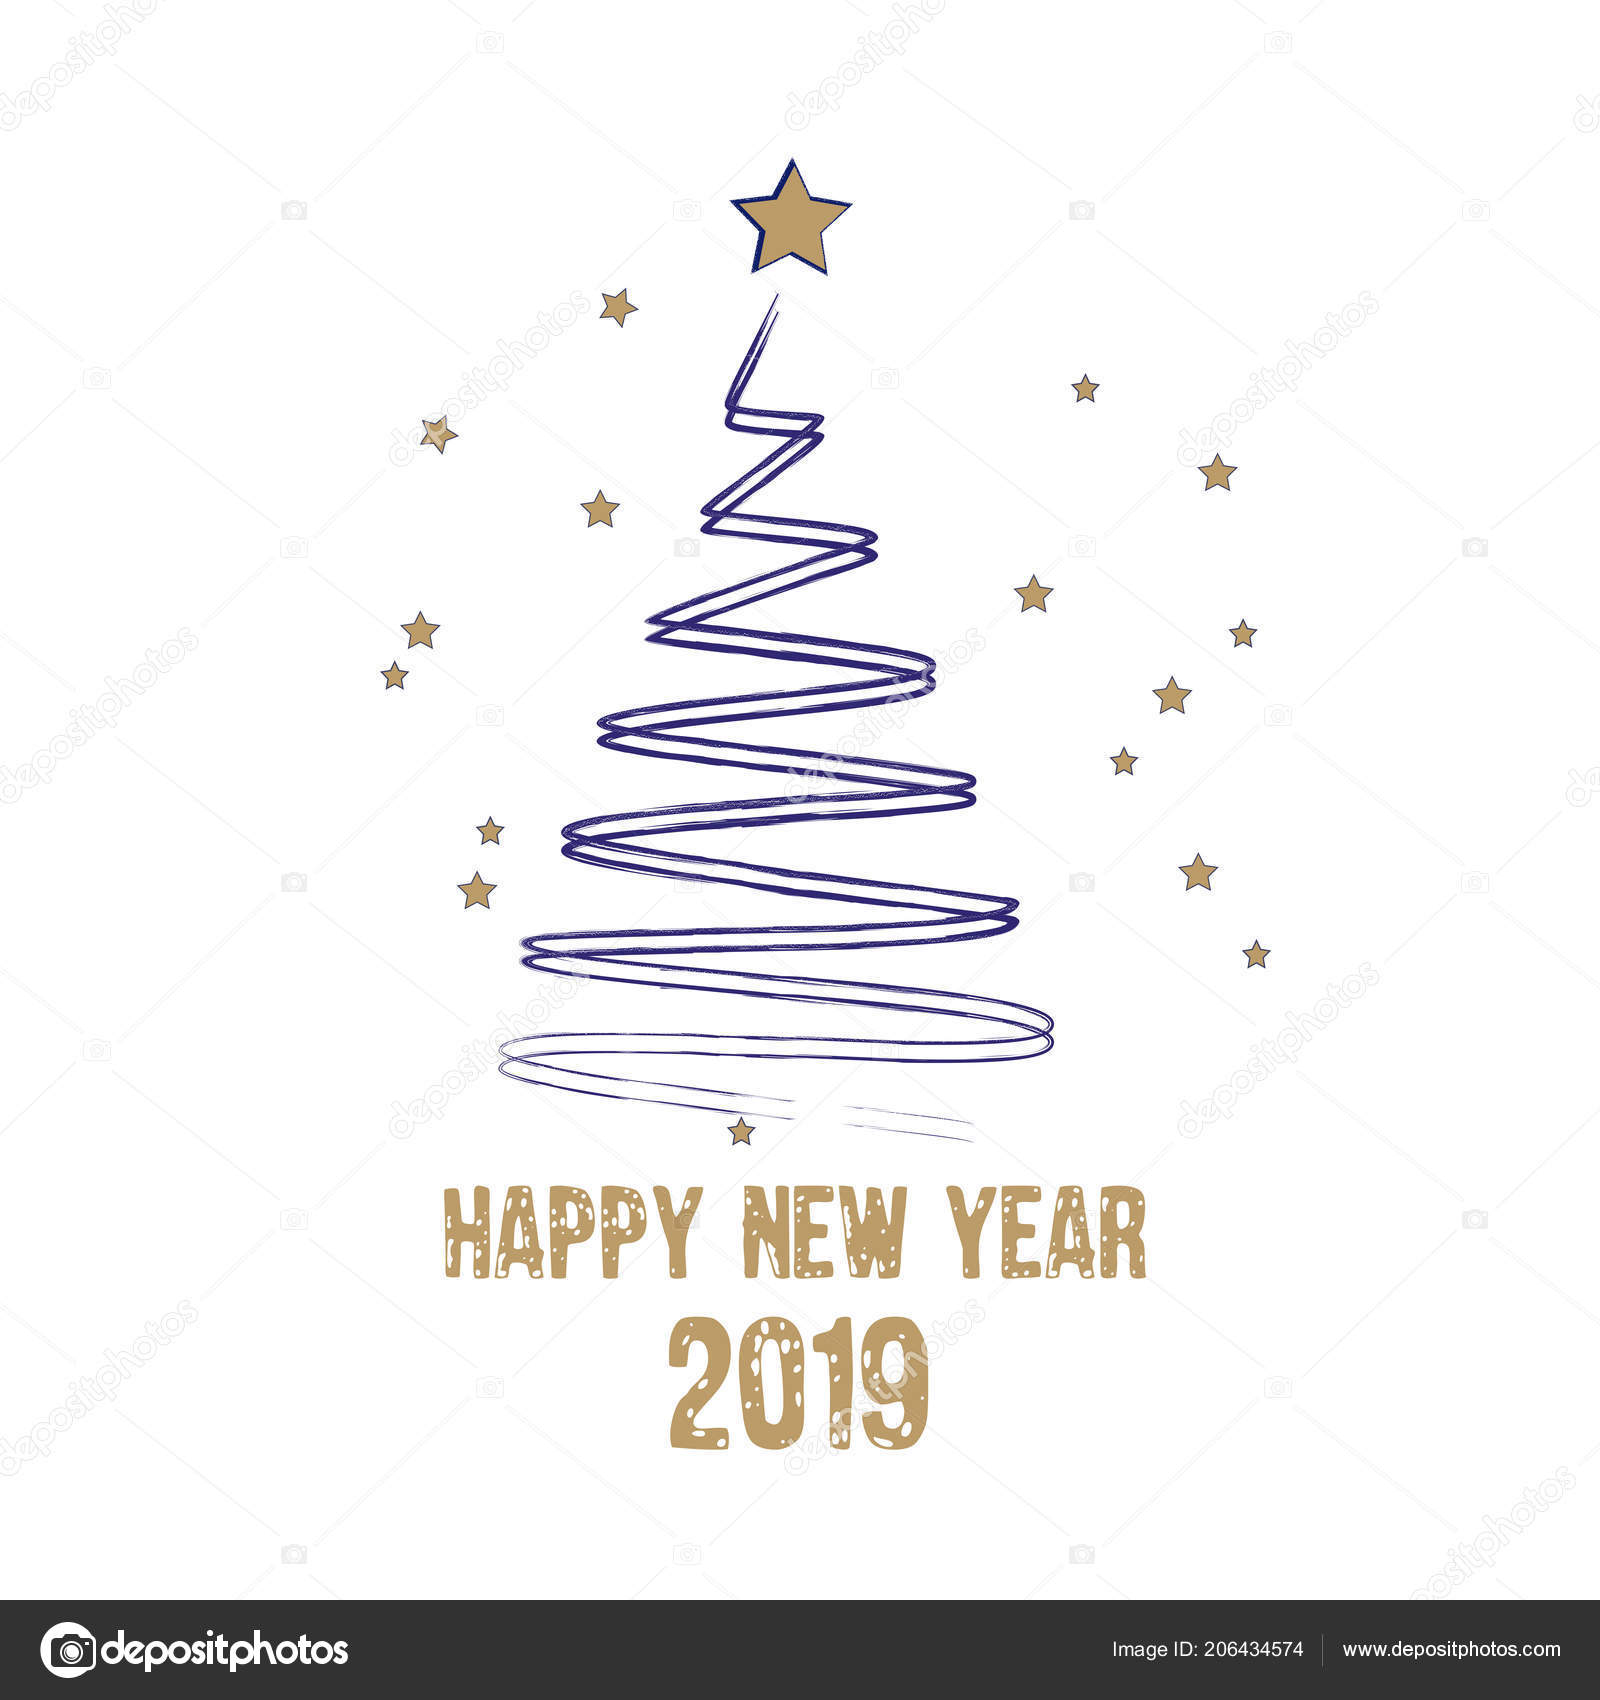 Merry Christmas Happy New Year Greeting Card Stylized Christmas Tree ...